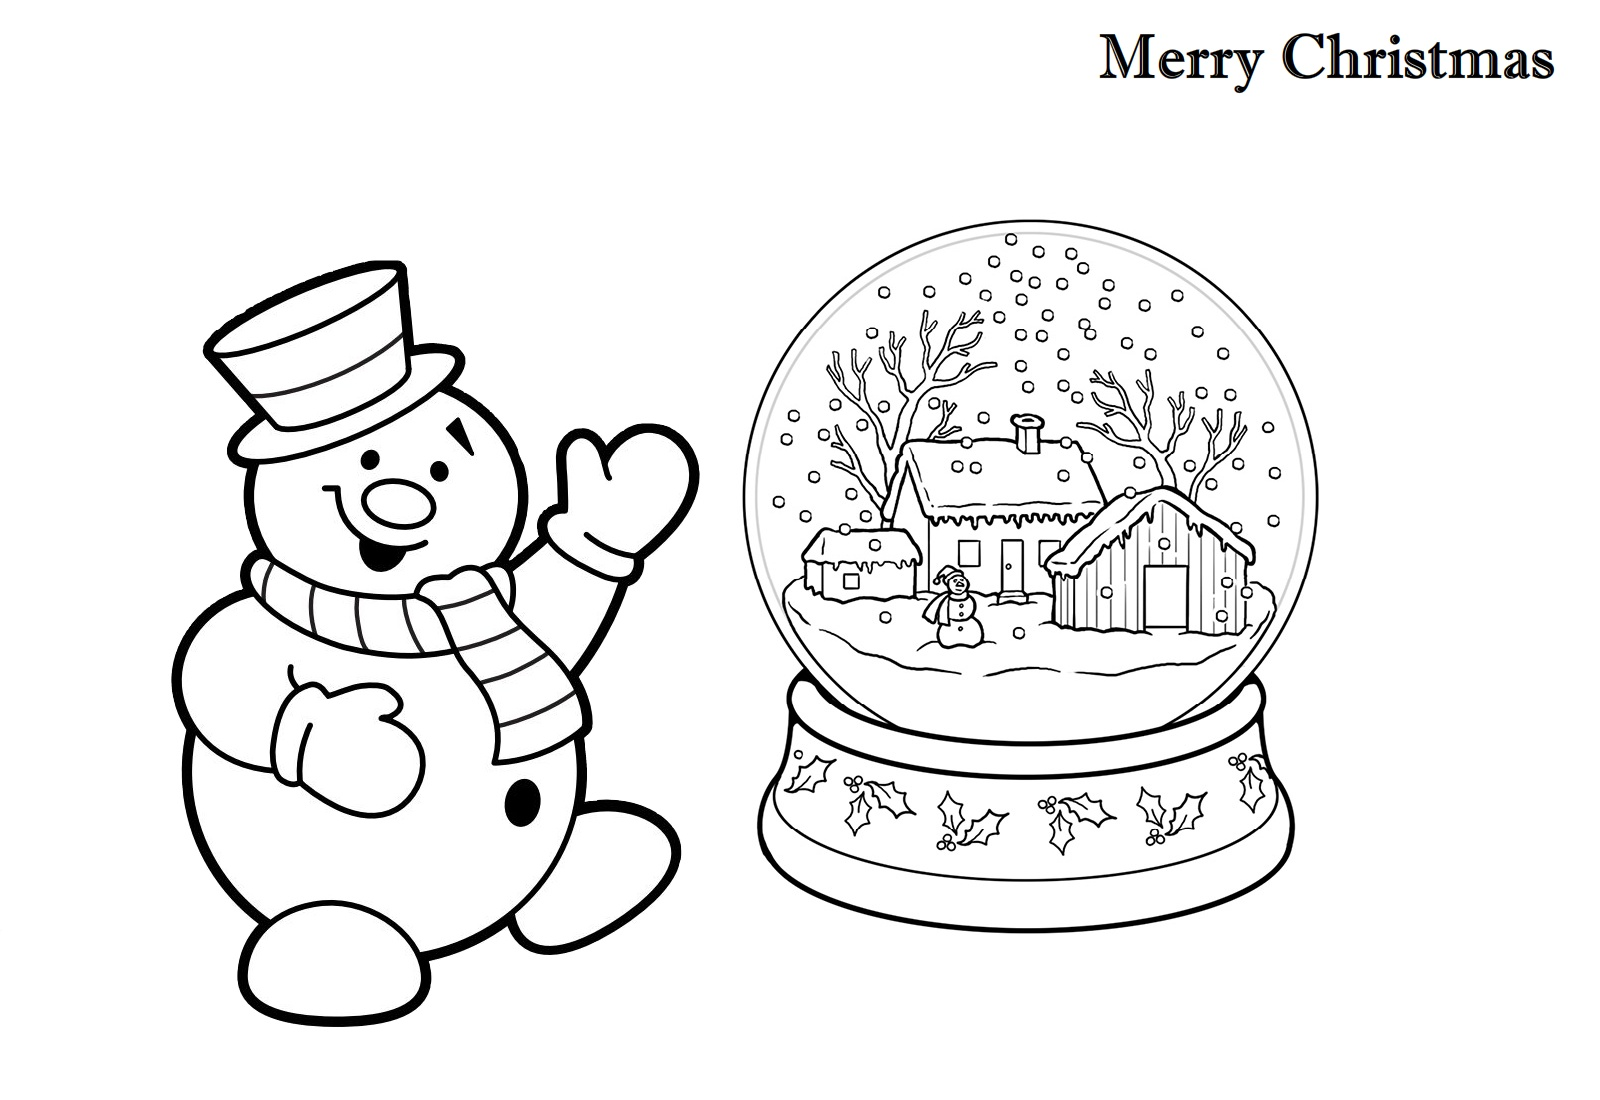 - 19 Merry Christmas Coloring Pages - Print Color Craft Pages